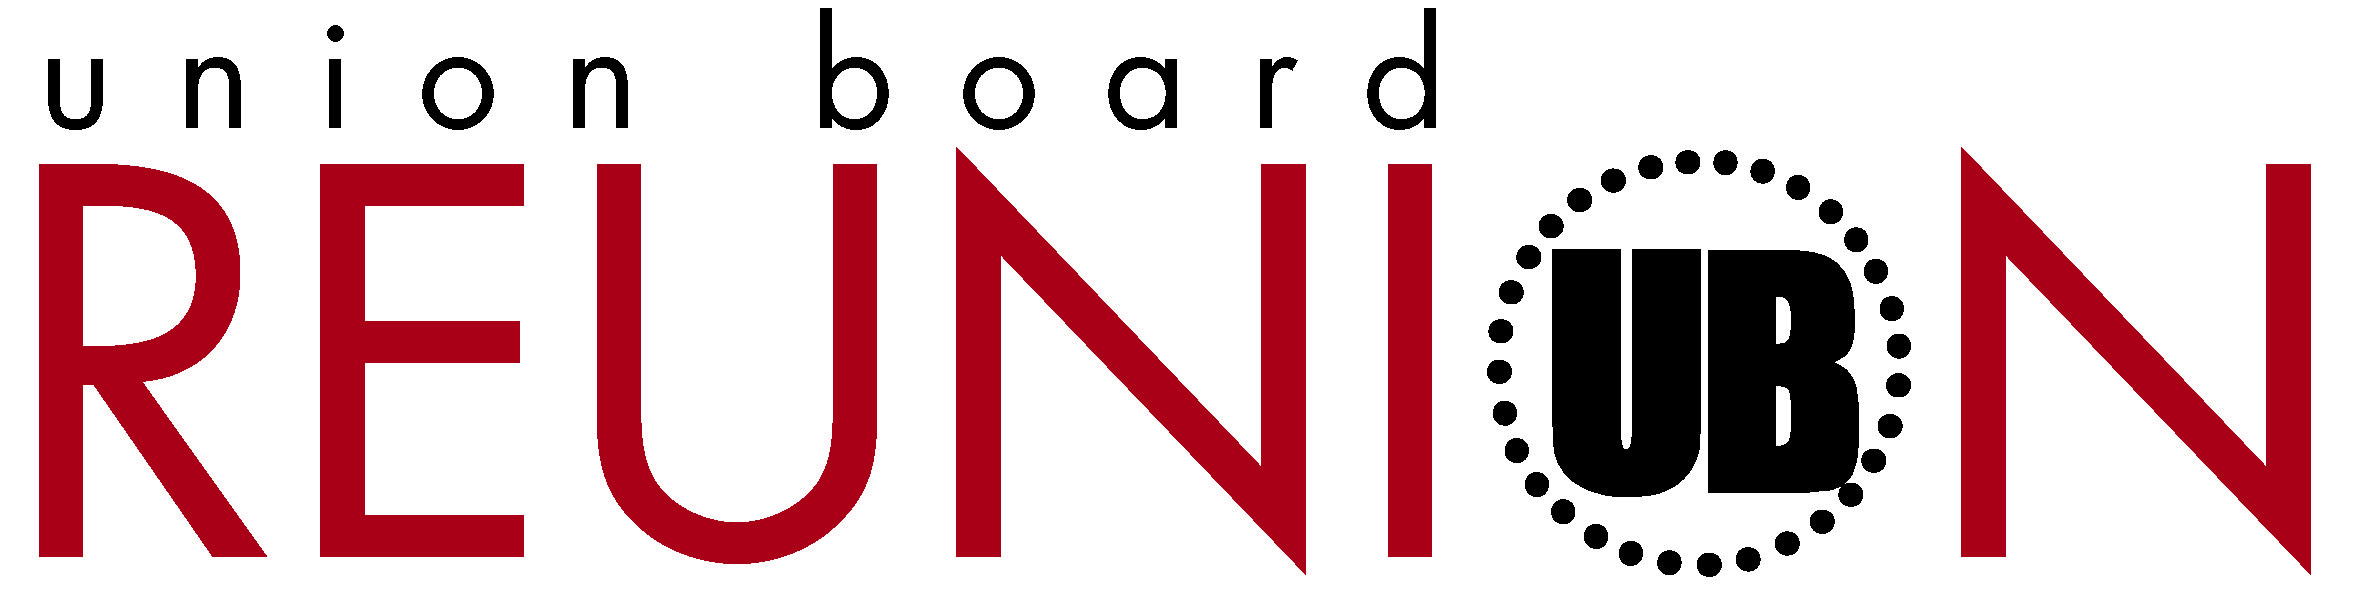 Union Board Reunion Logo